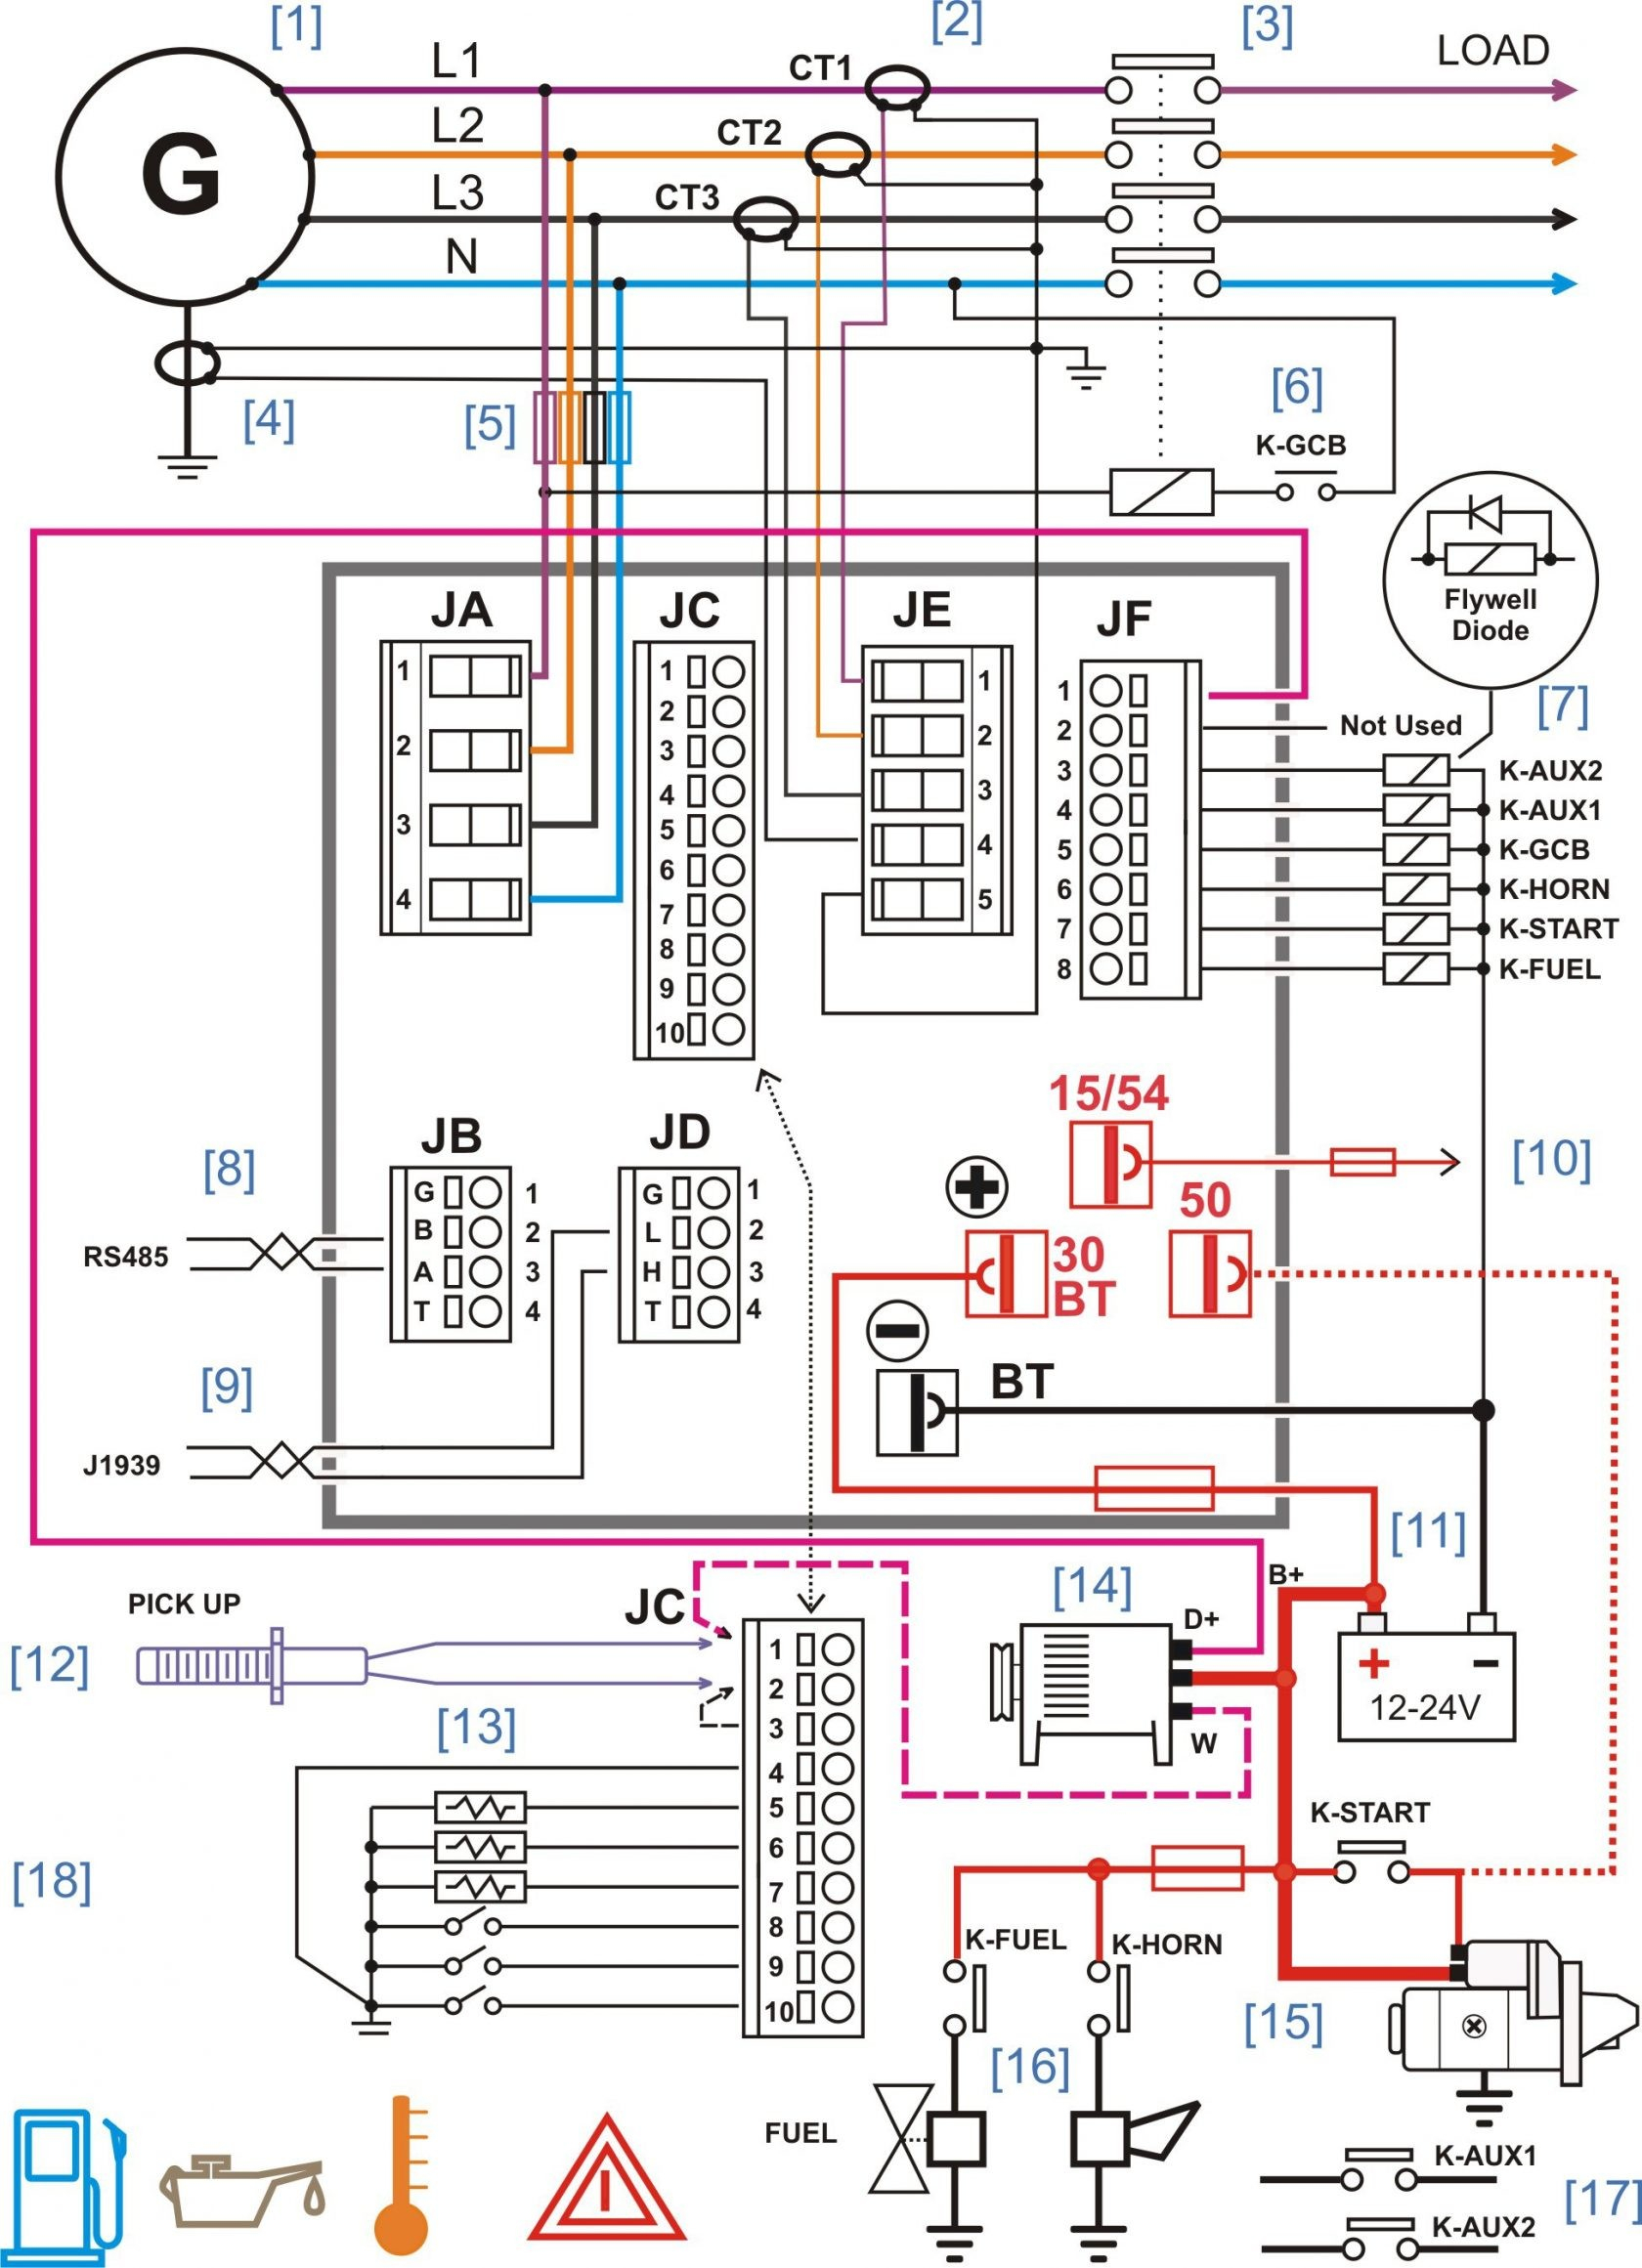 DIAGRAM] Blaupunkt Car Audio Wiring Diagram Download Wiring Diagram FULL  Version HD Quality Wiring Diagram - RIFLESCHEMATIC.VENISEPARANORMALE.FRrifleschematic.veniseparanormale.fr